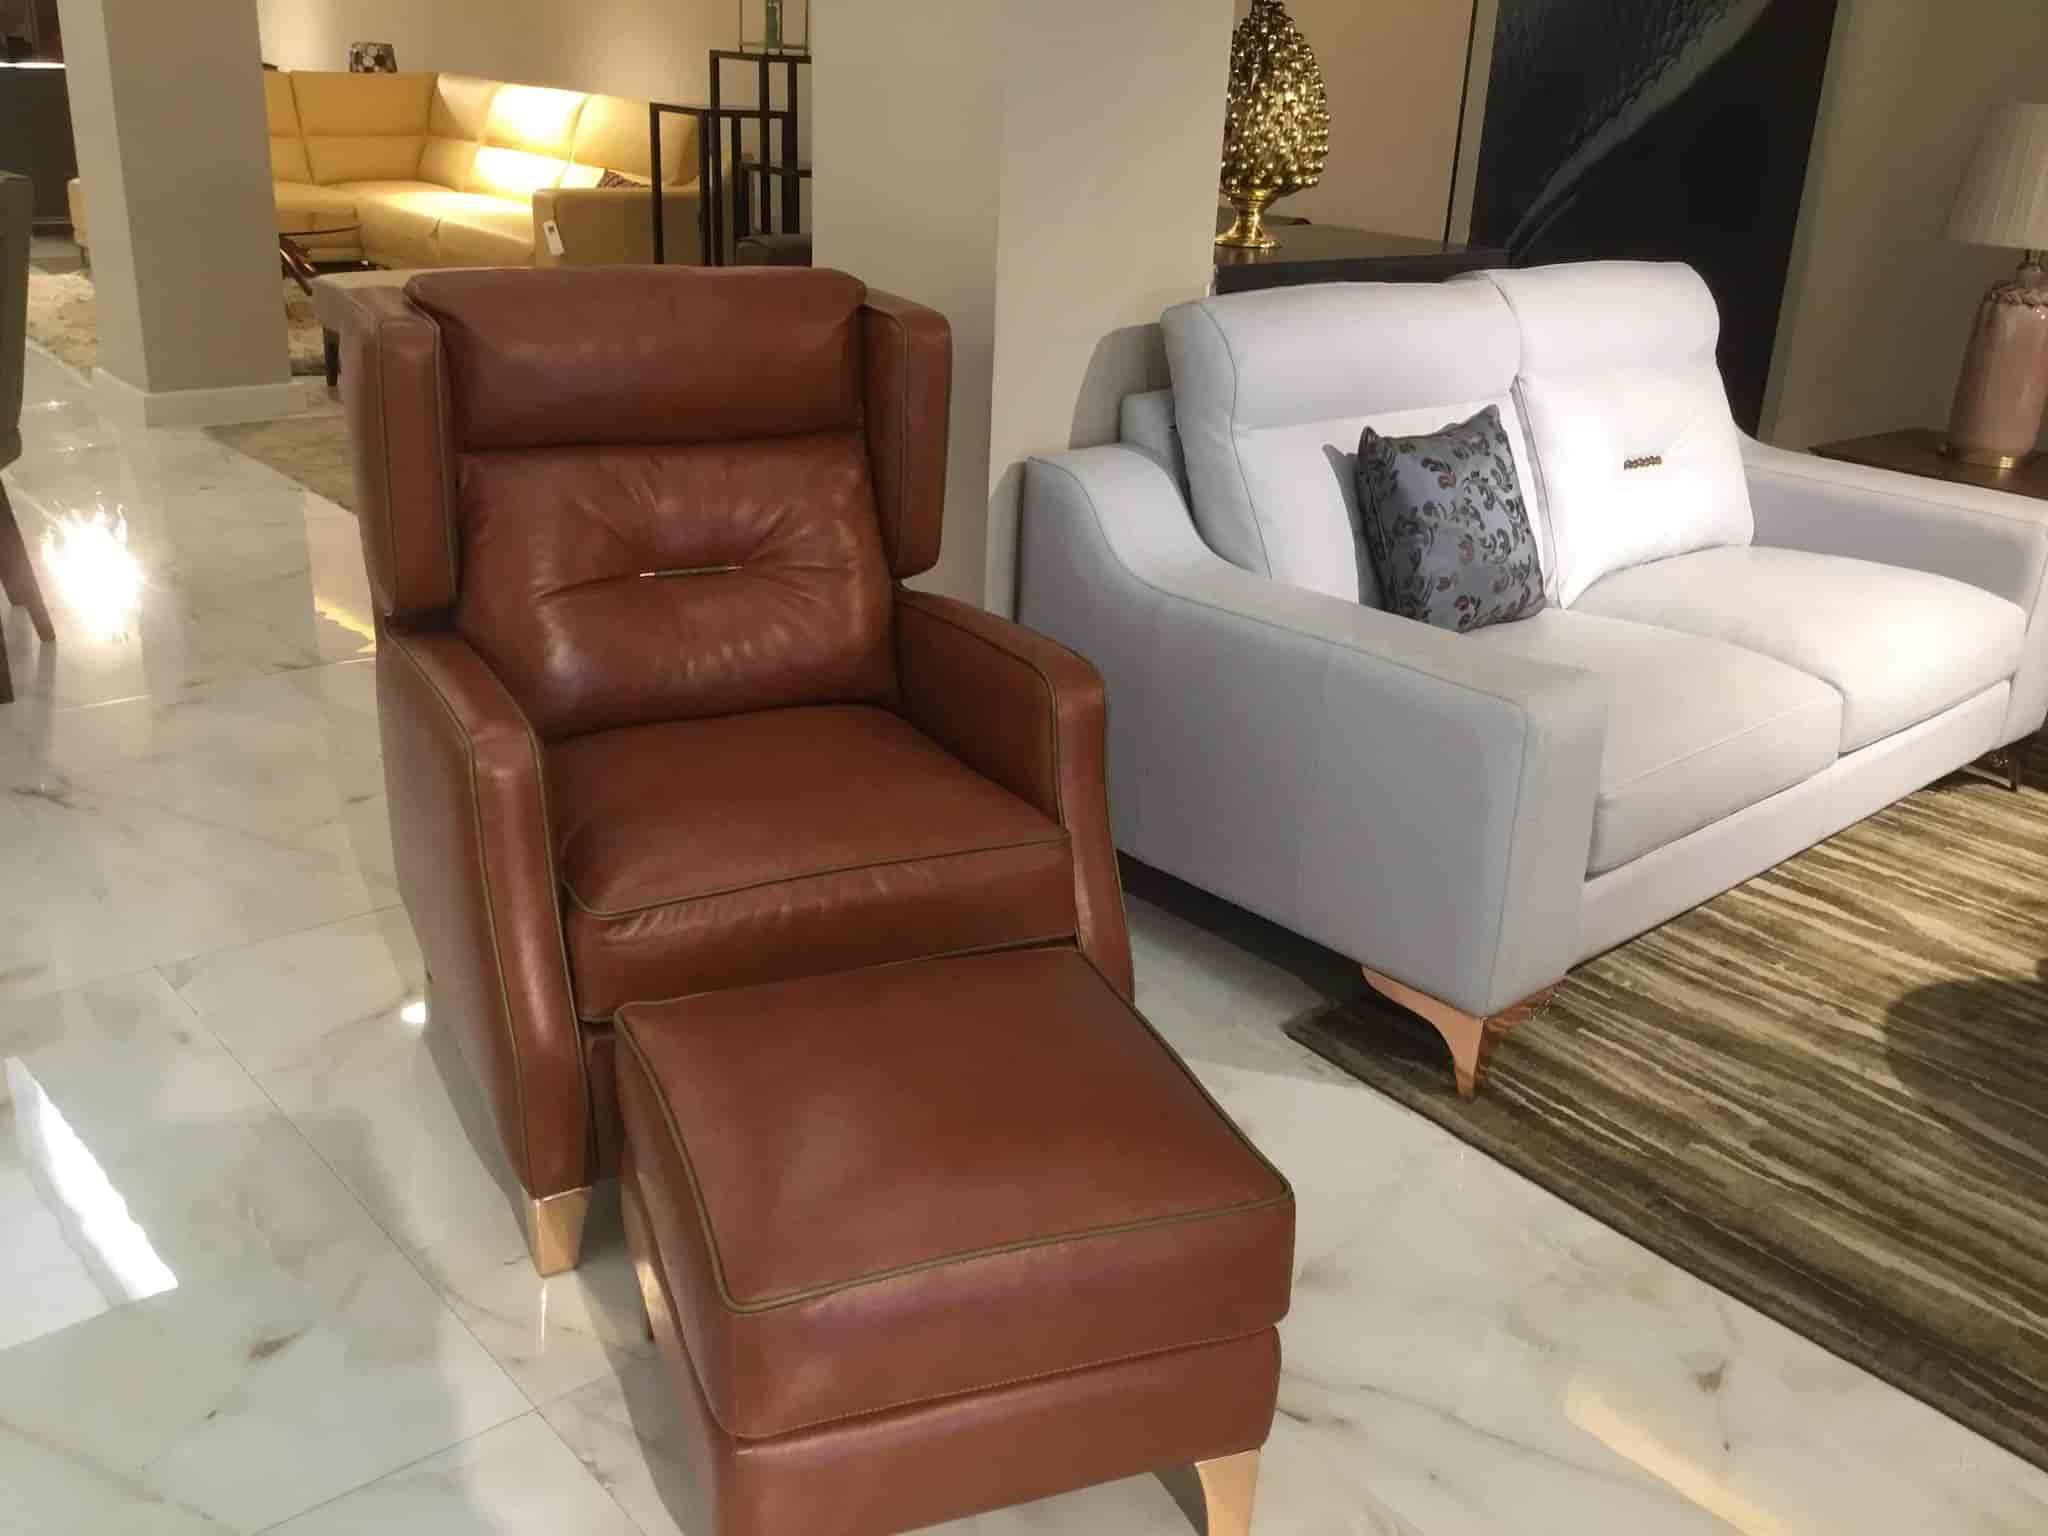 stanley sofa showroom in bangalore gunstige bettsofa online boutique photos mission road pictures images dealers